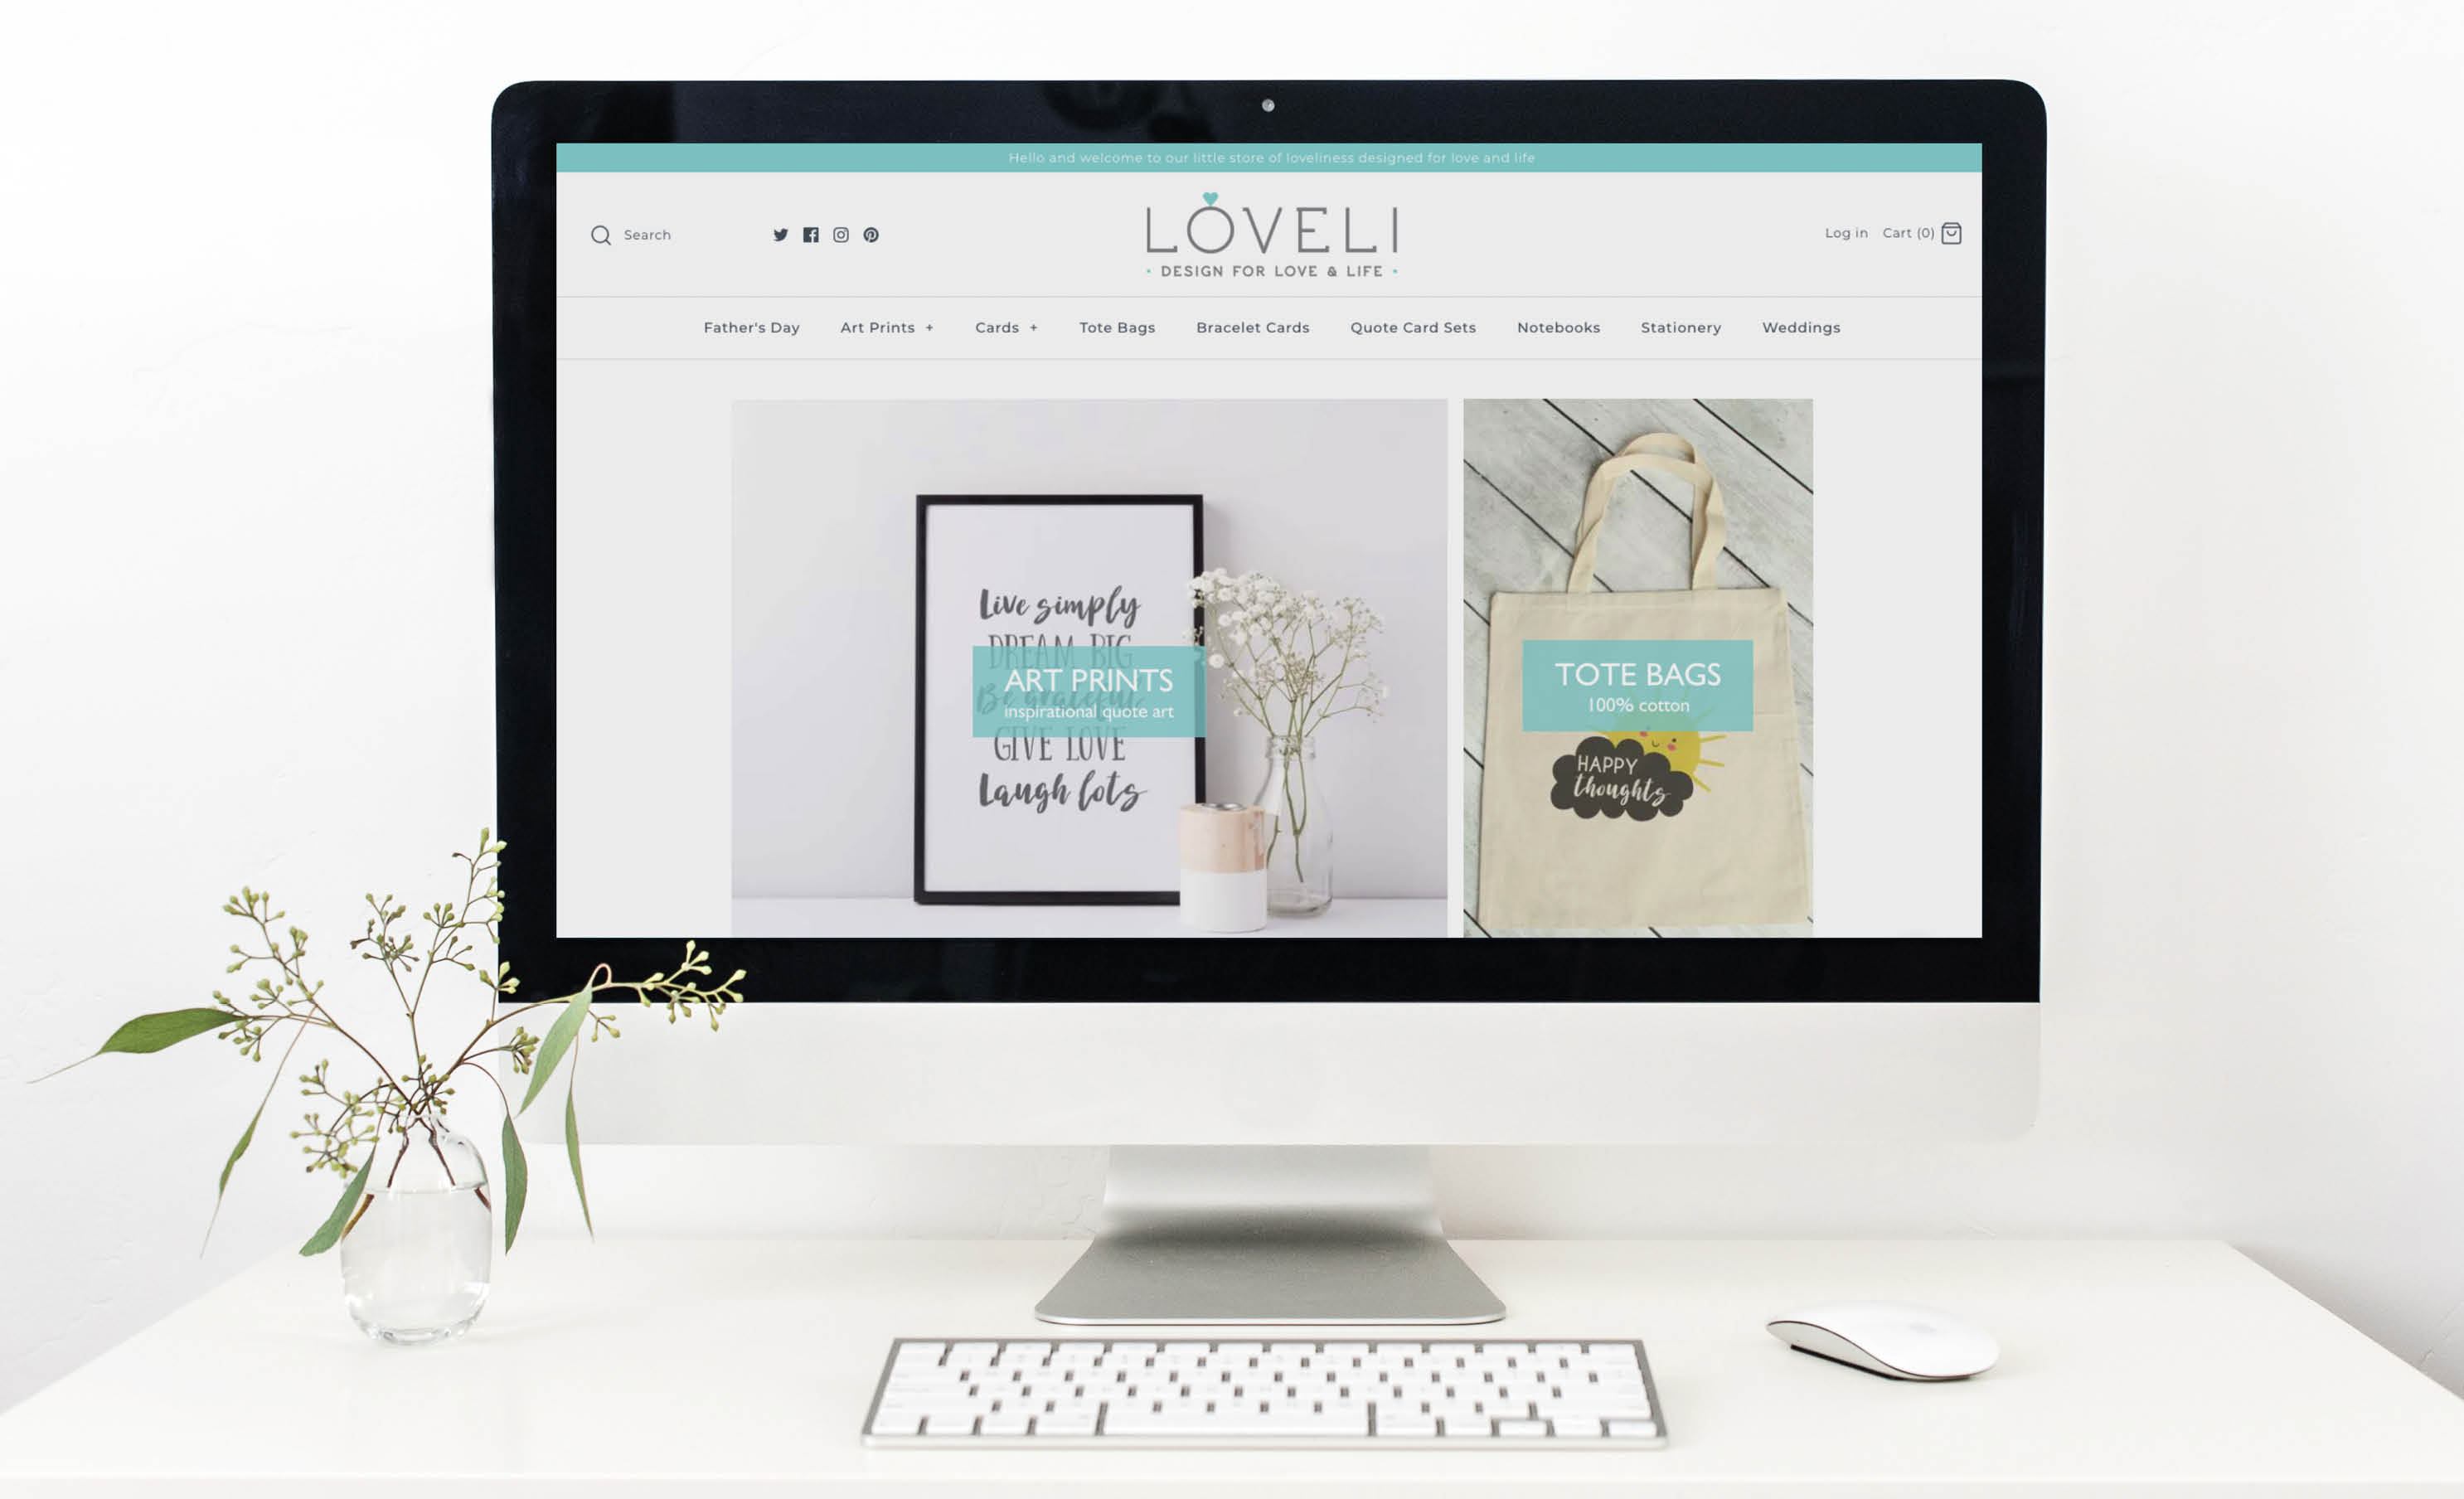 loveli-websitedesign